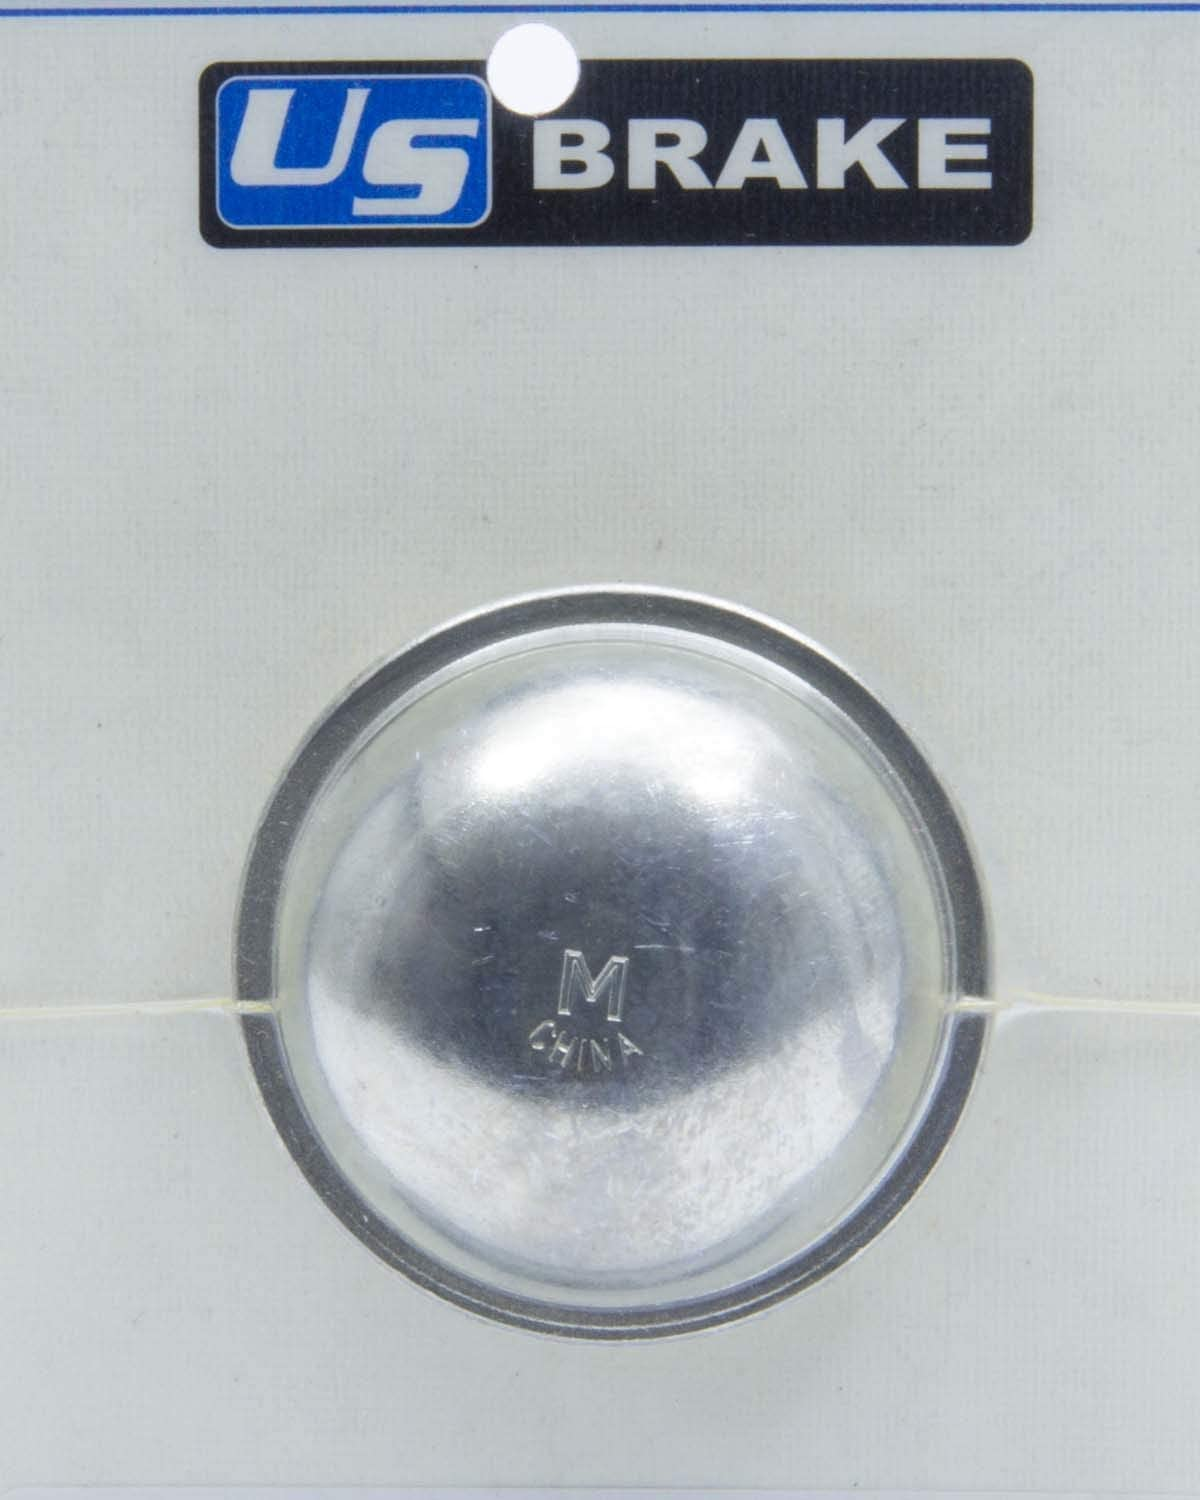 AFCO 9851-8502 New product!! Ford Pinto Cap We OFFer at cheap prices Replacement Dust